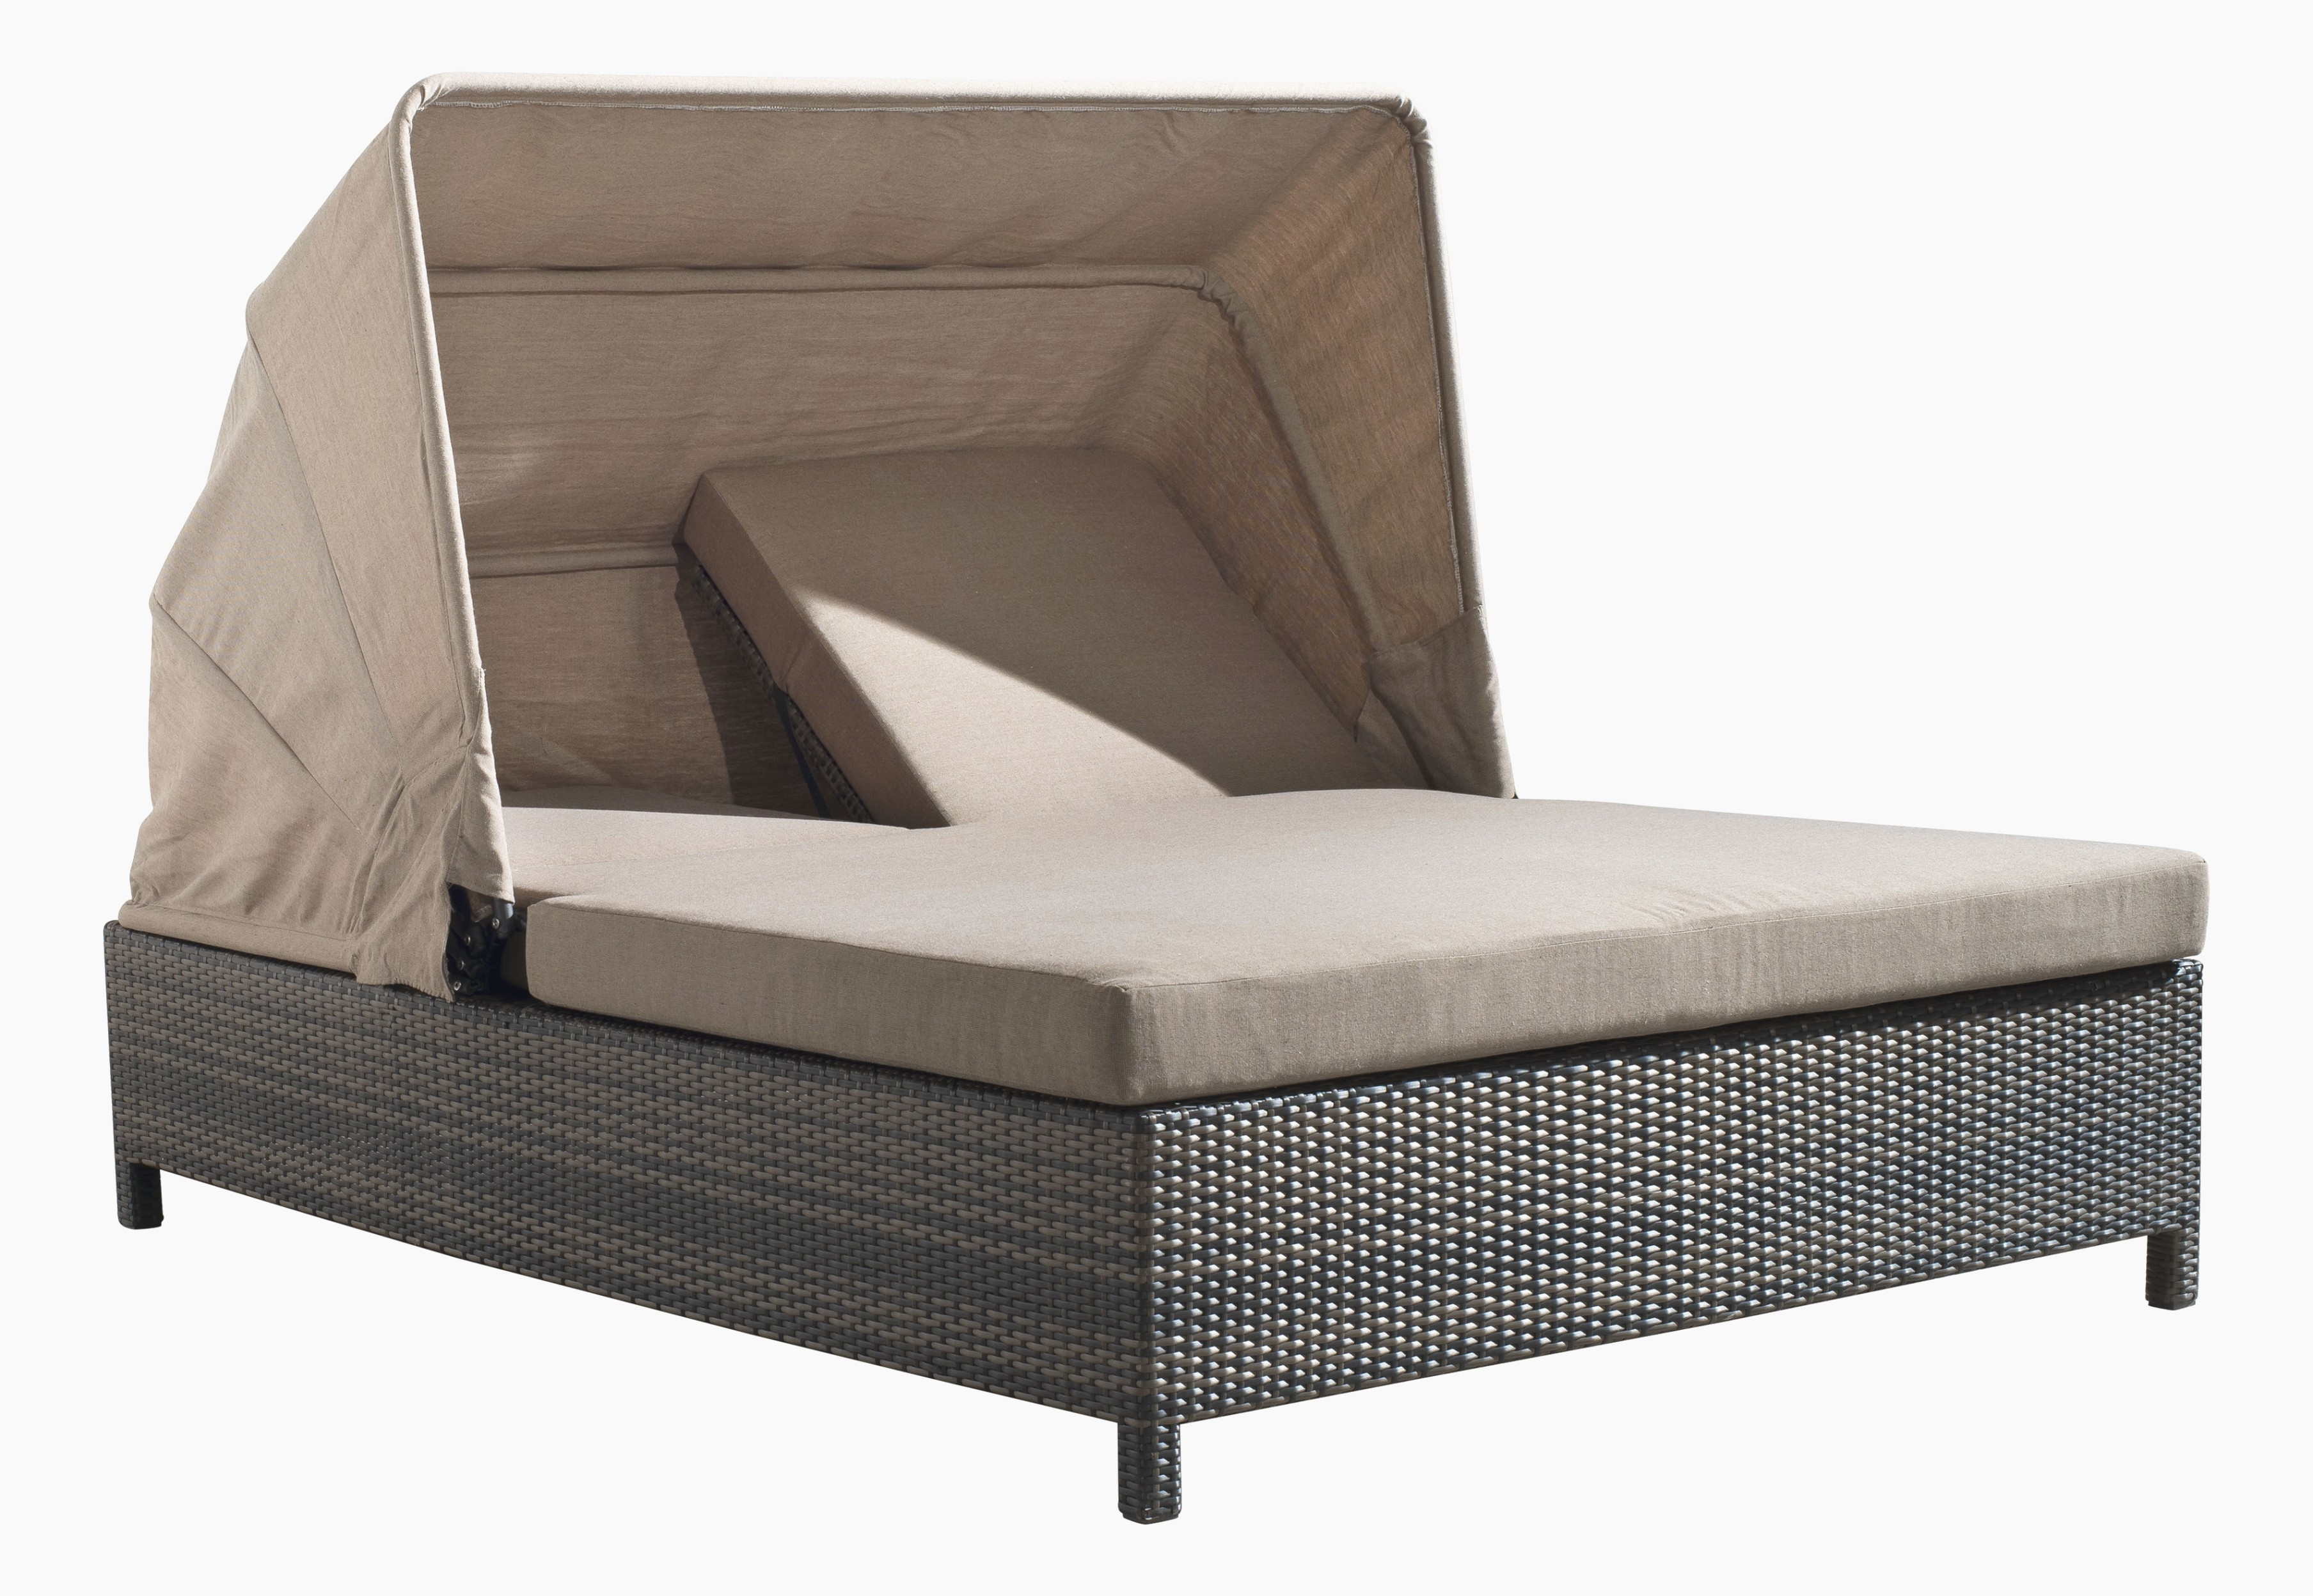 Génial Double Chaise Lounge (View 12 of 15)